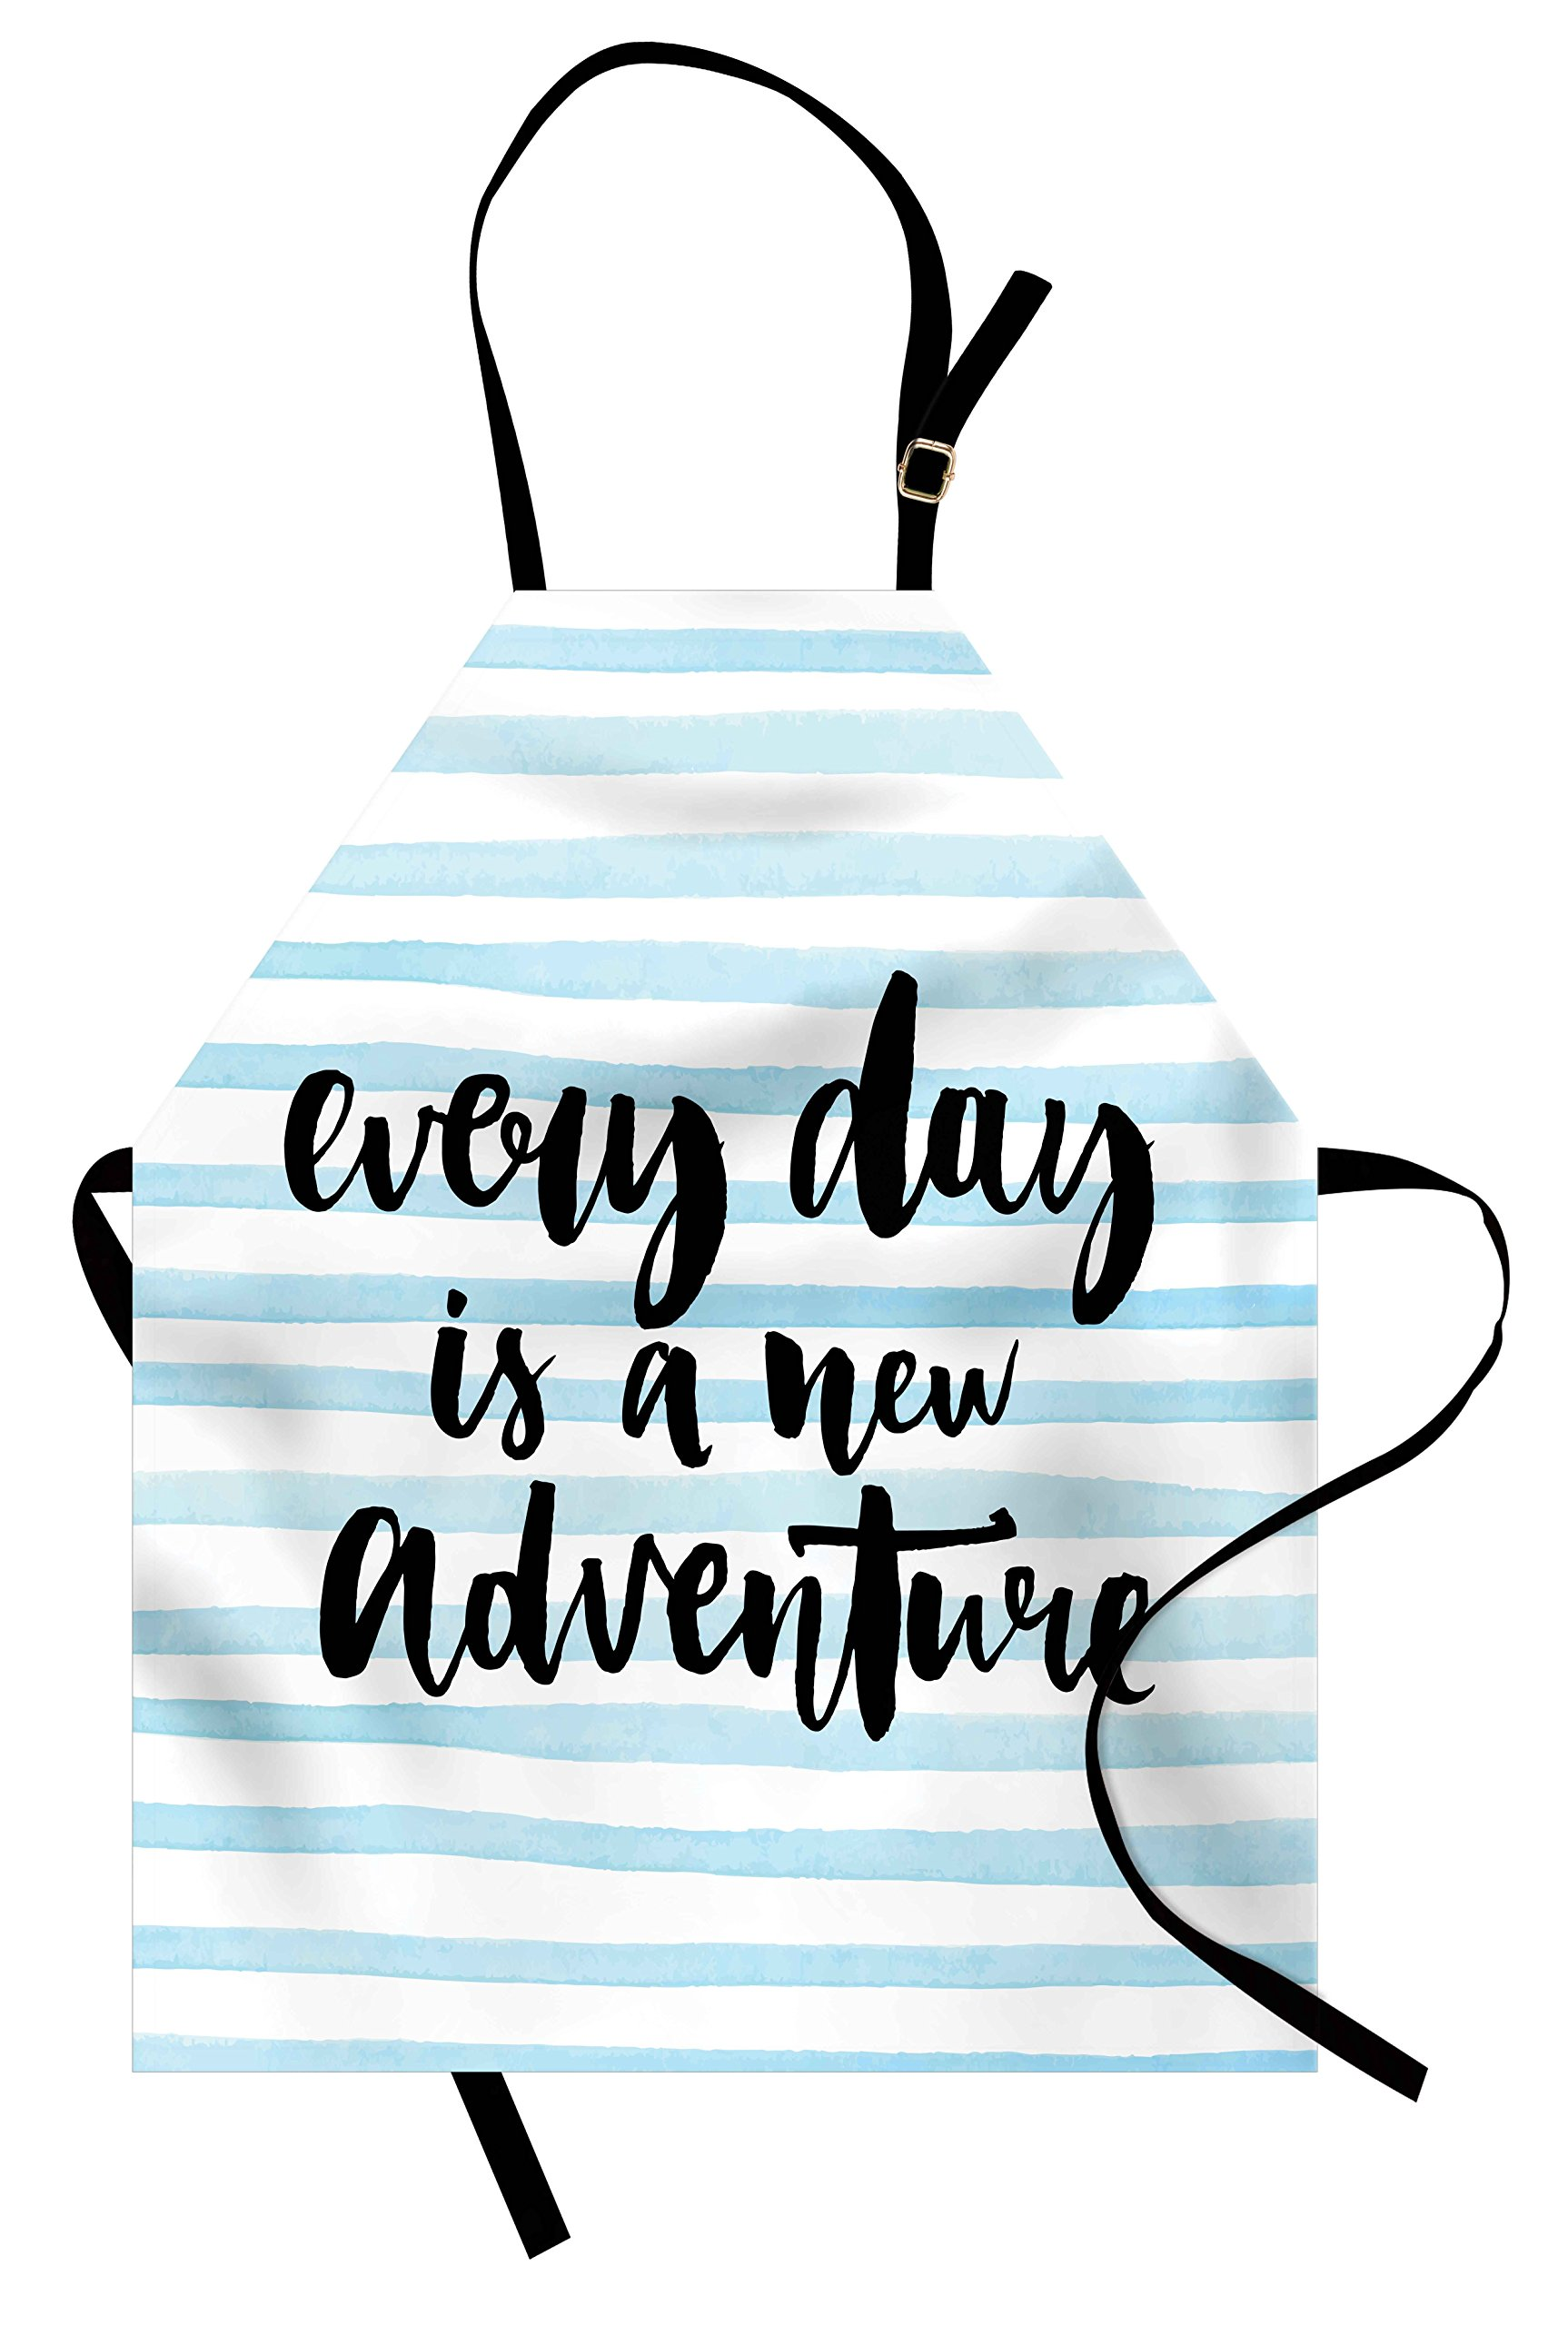 Ambesonne Adventure Apron, Every Day is a New Adventure Quote Inspirational Things About Life Artwork, Unisex Kitchen Bib Apron with Adjustable Neck for Cooking Baking Gardening, Baby Blue Black